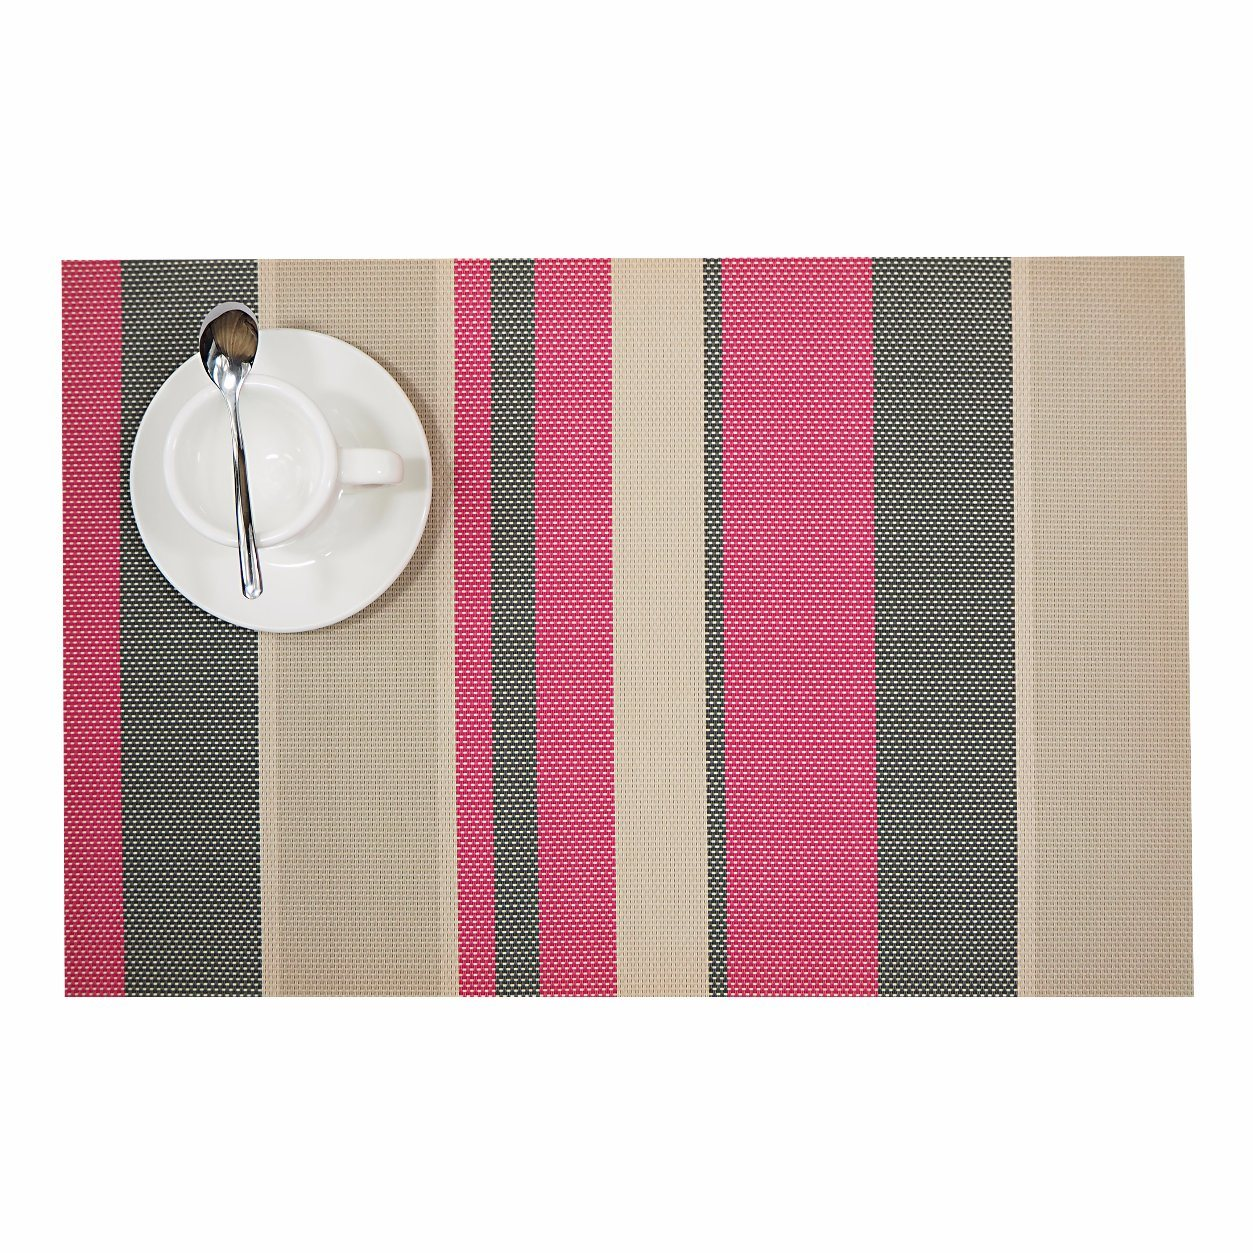 Stripes Promotional PVC Woven Placemat for Home & Restaurant